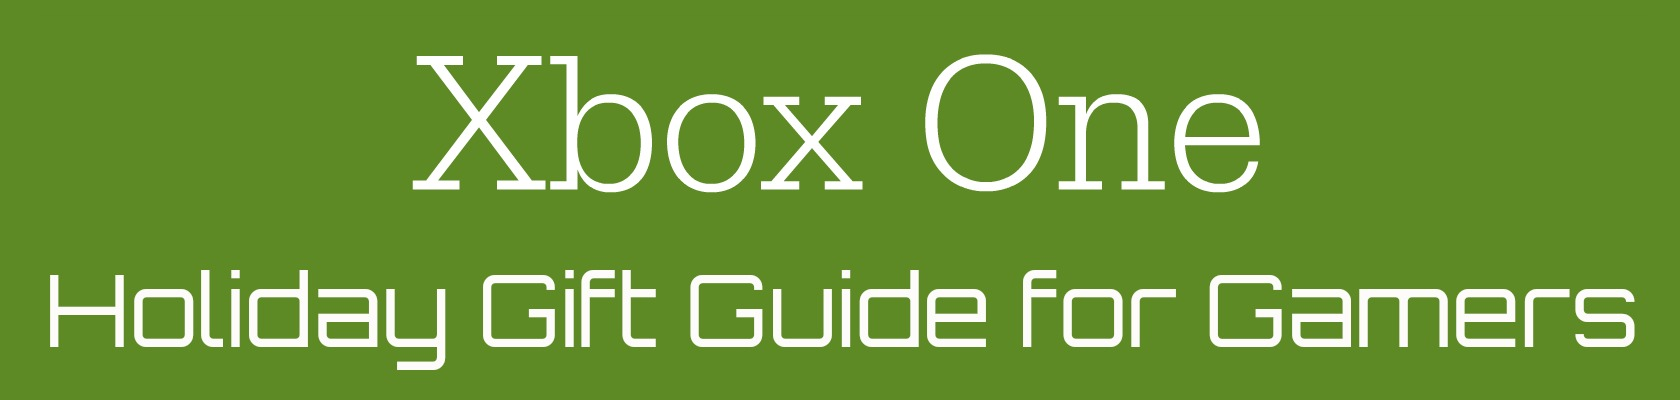 Xbox One gift guide